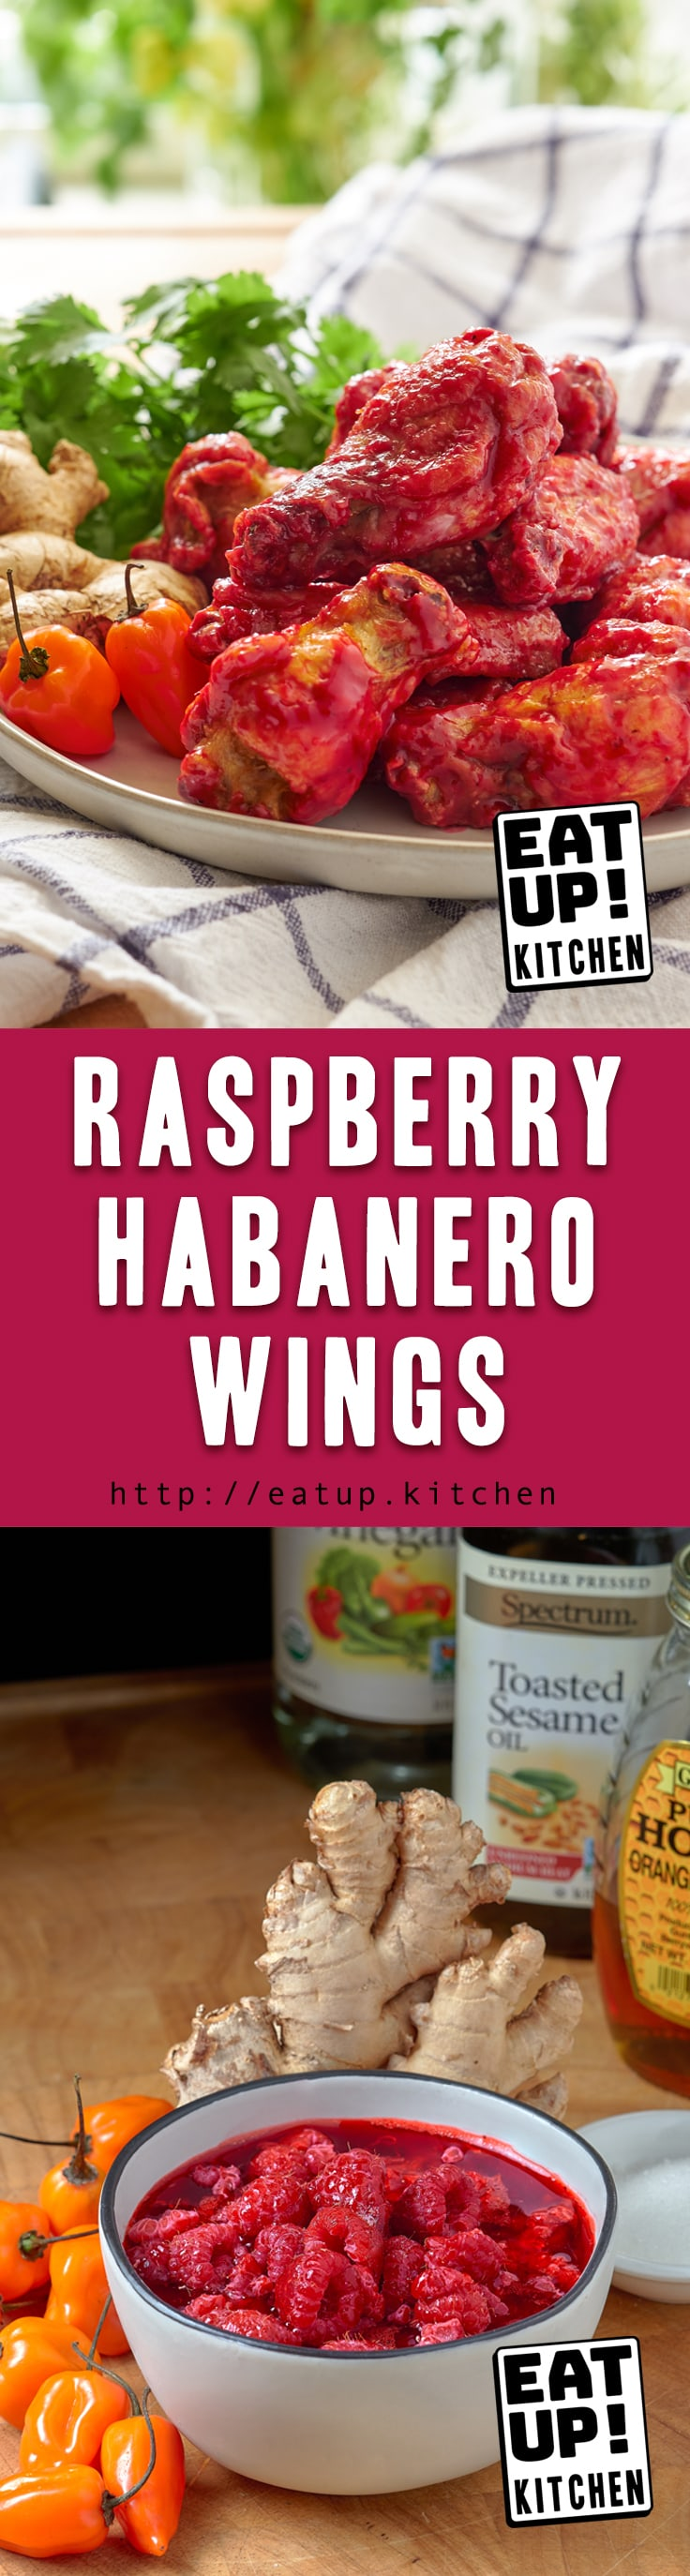 These Raspberry Habanero Wings are sweet, tart, spicy, heavenly, and addictive. I quickly threw this together with a bunch of left overs from other recipes. I'm thrilled to share the results with you!